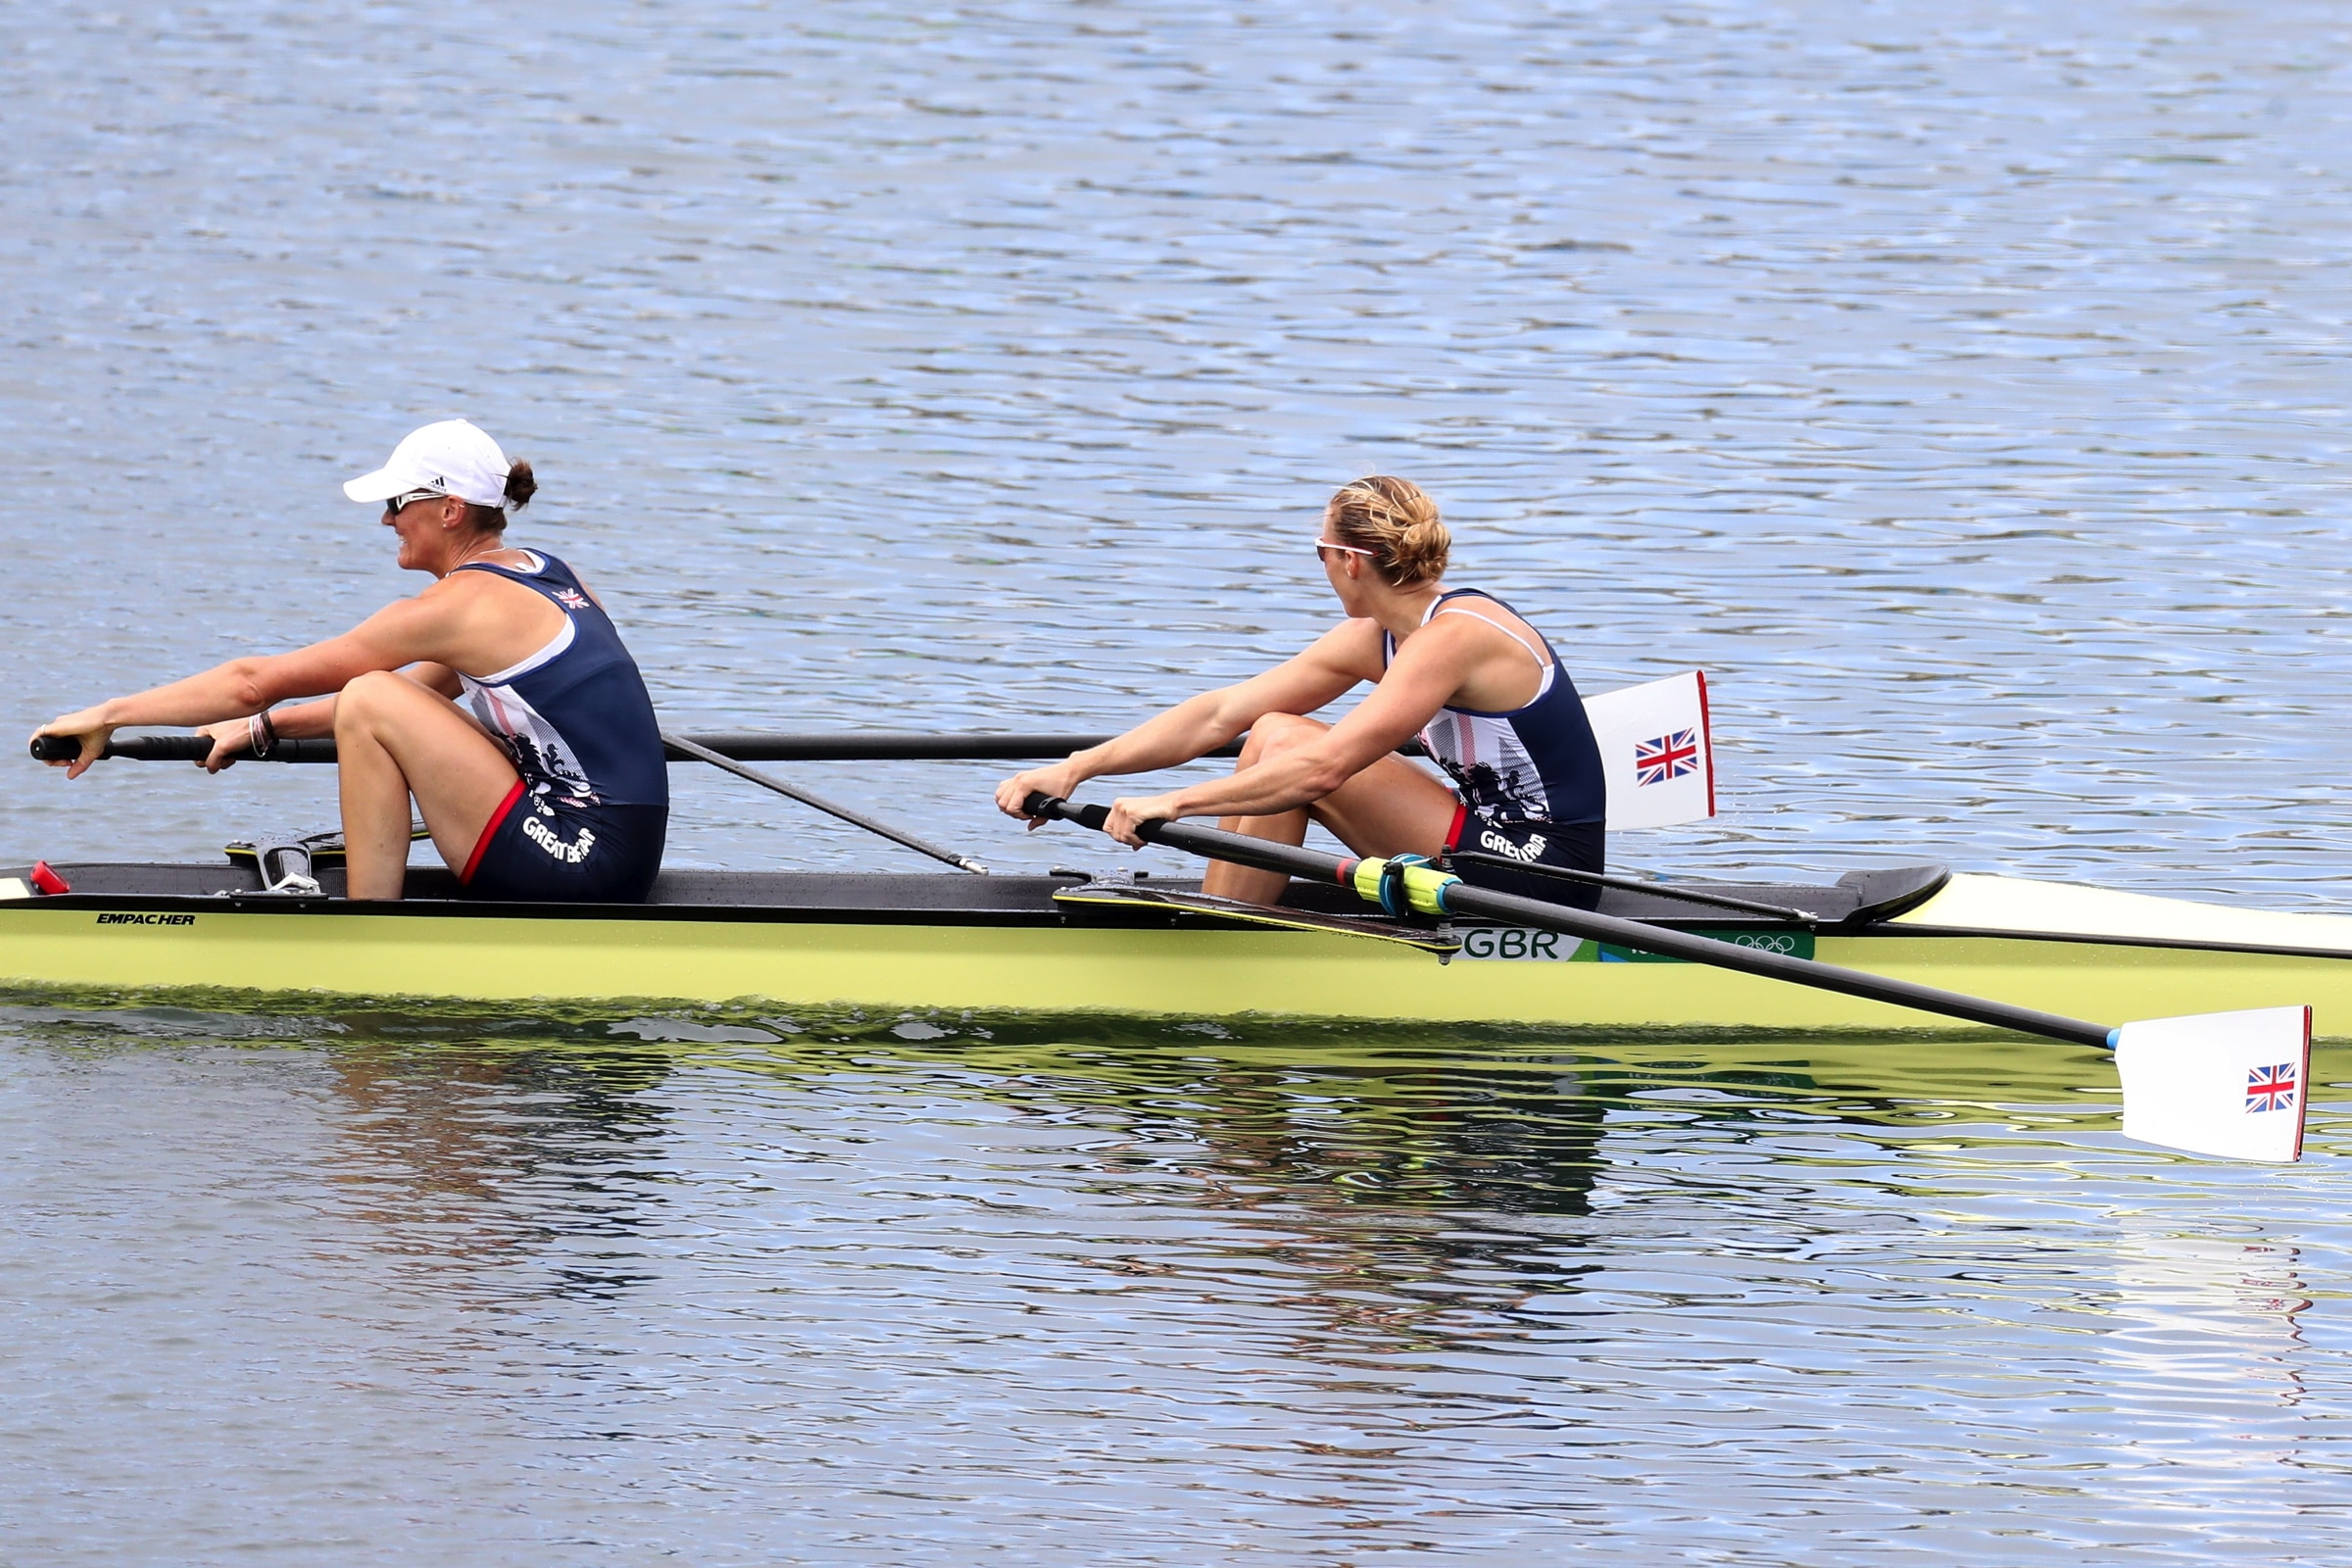 Rowing - Women's Pair